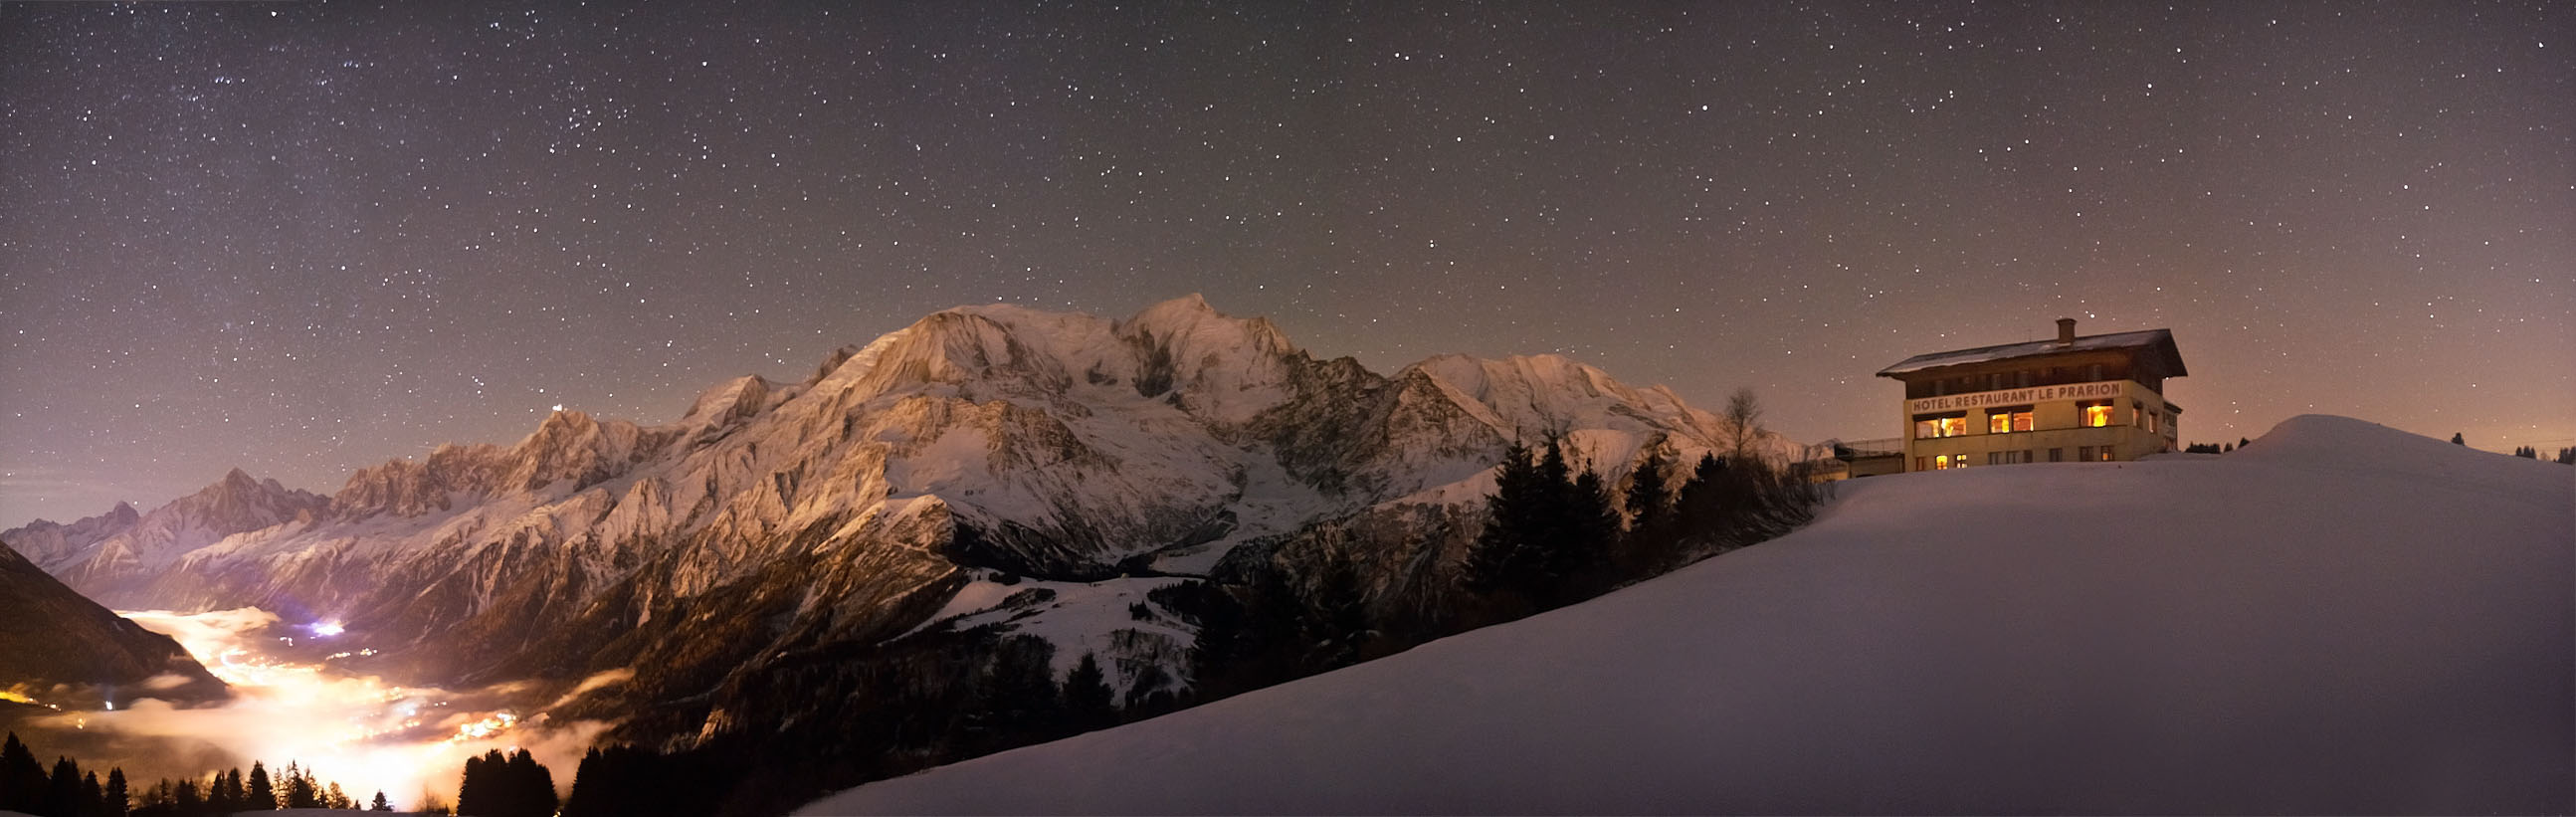 By night, Les Houches